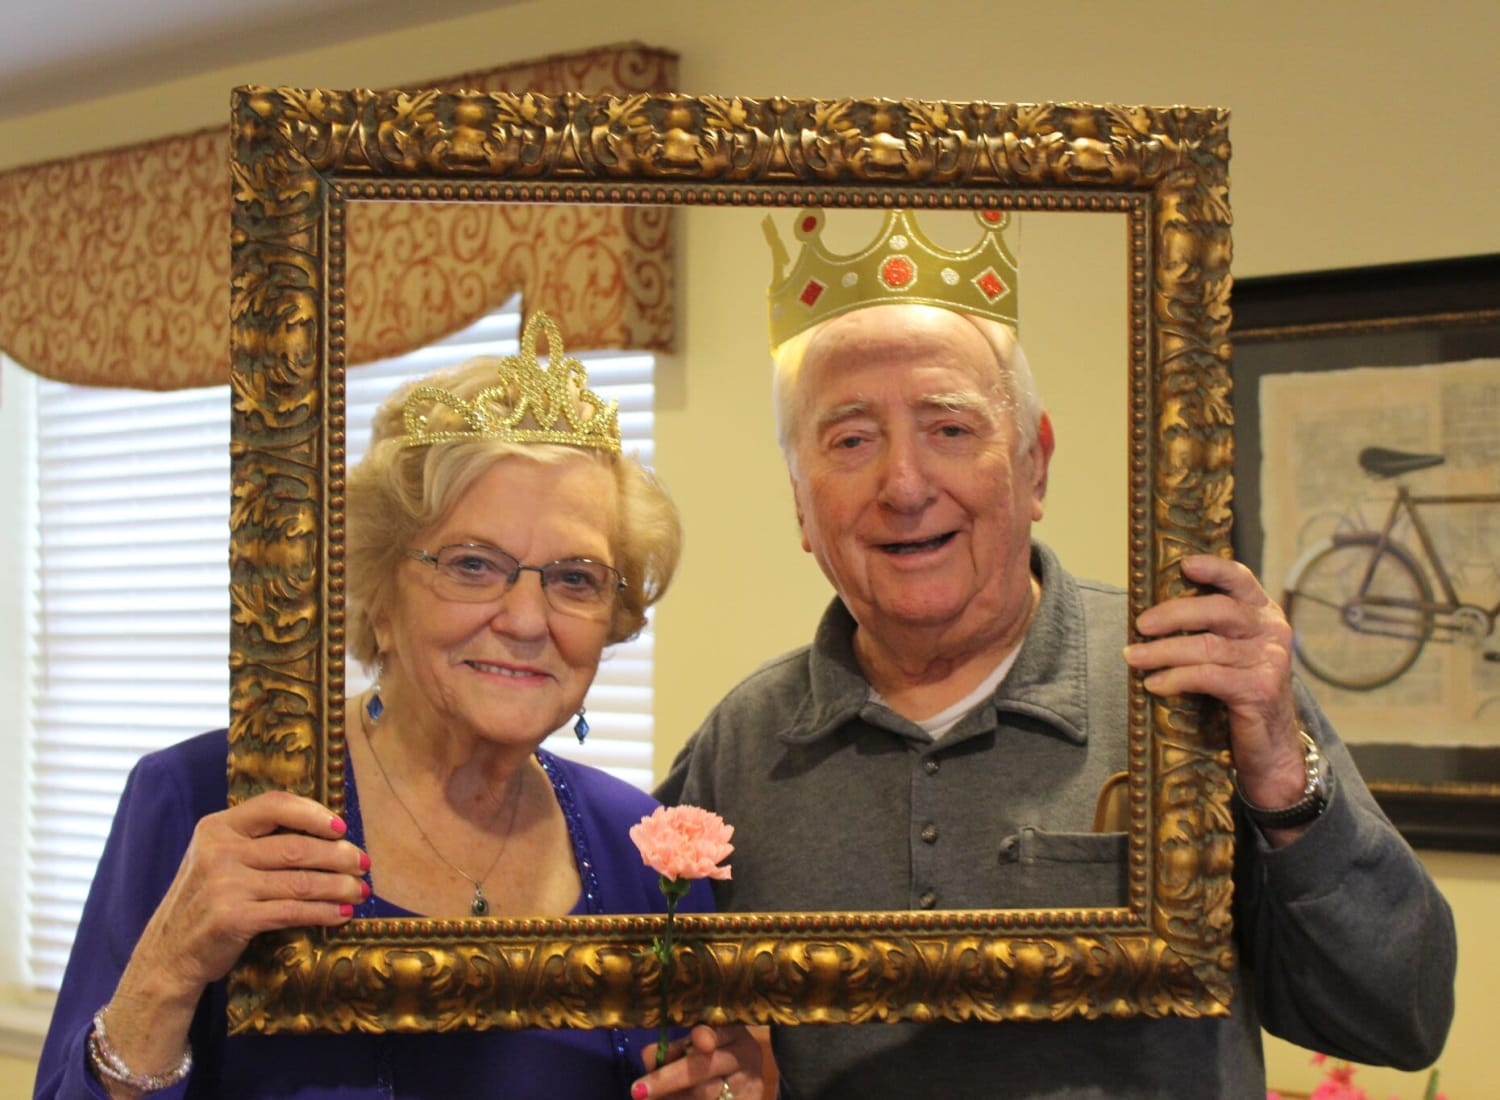 Resident couple posing in a photo frame at The Birches at Newtown in Newtown, Pennsylvania